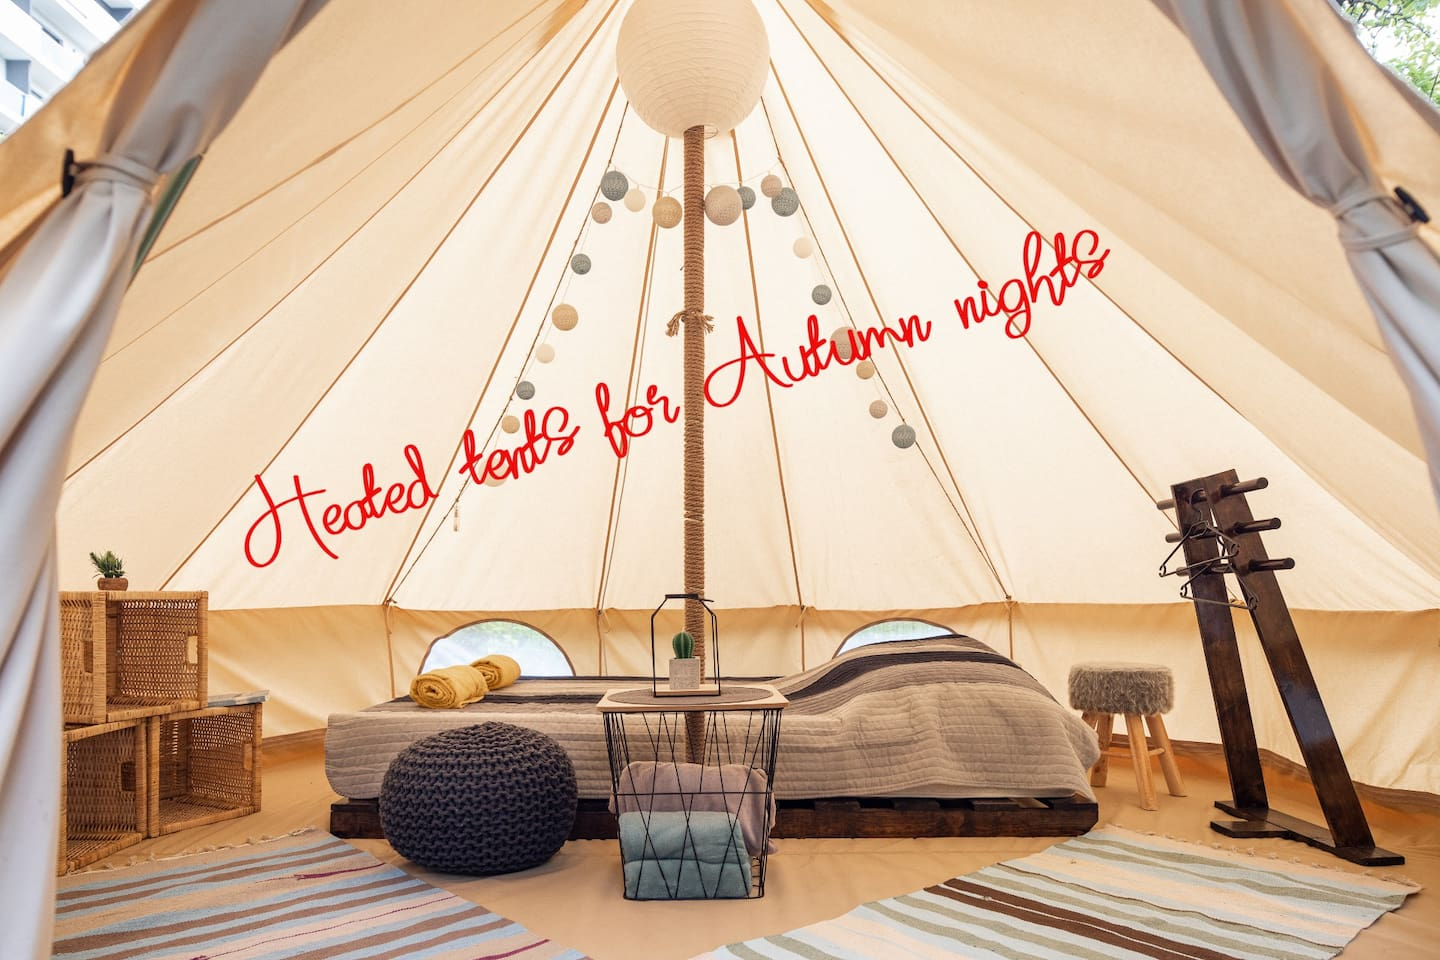 All tents are heated for the chilly Autumn nights.